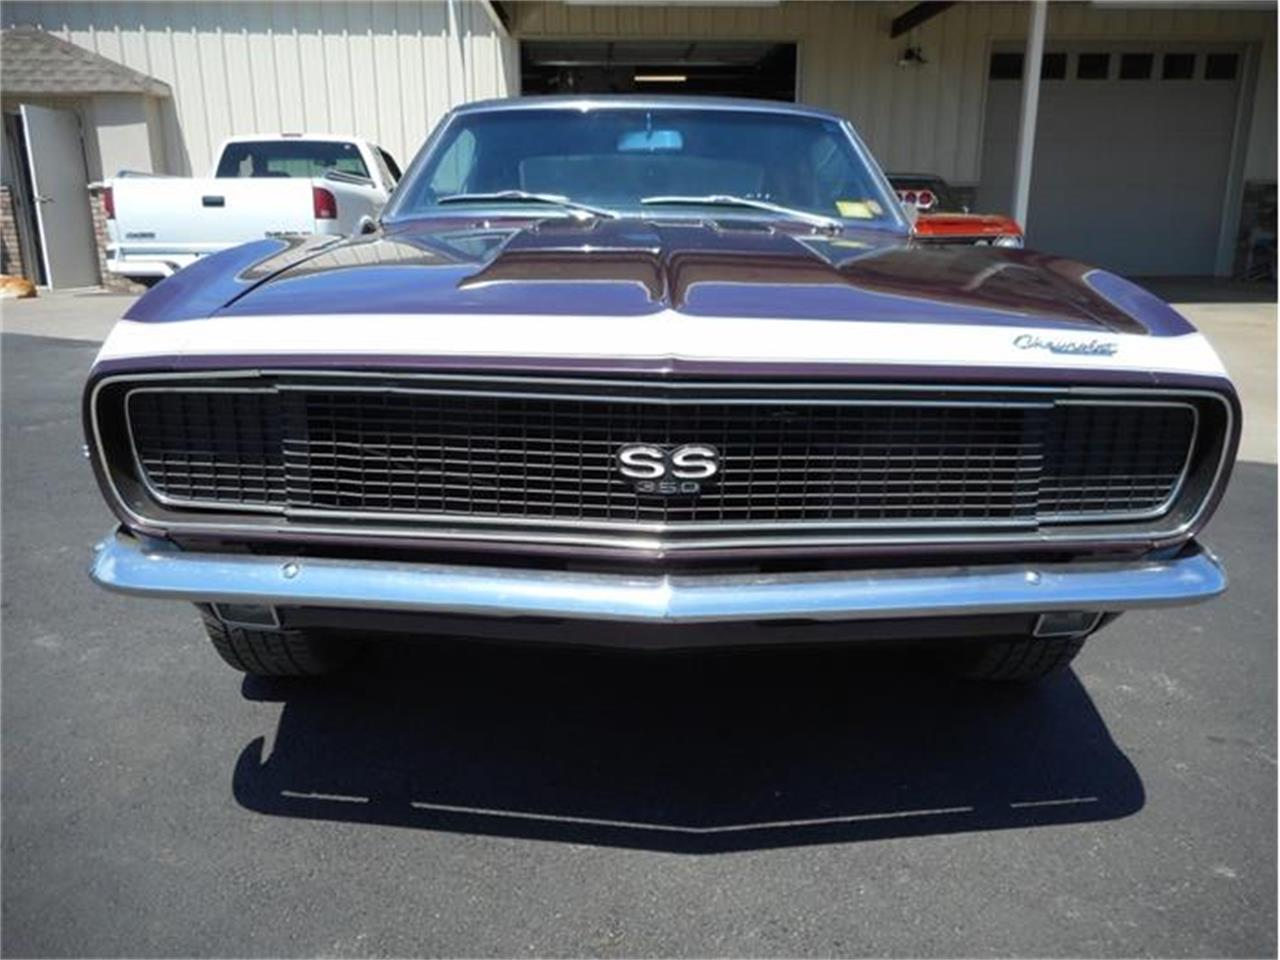 Large Picture of Classic 1967 Camaro RS/SS - $32,995.00 - FQIR